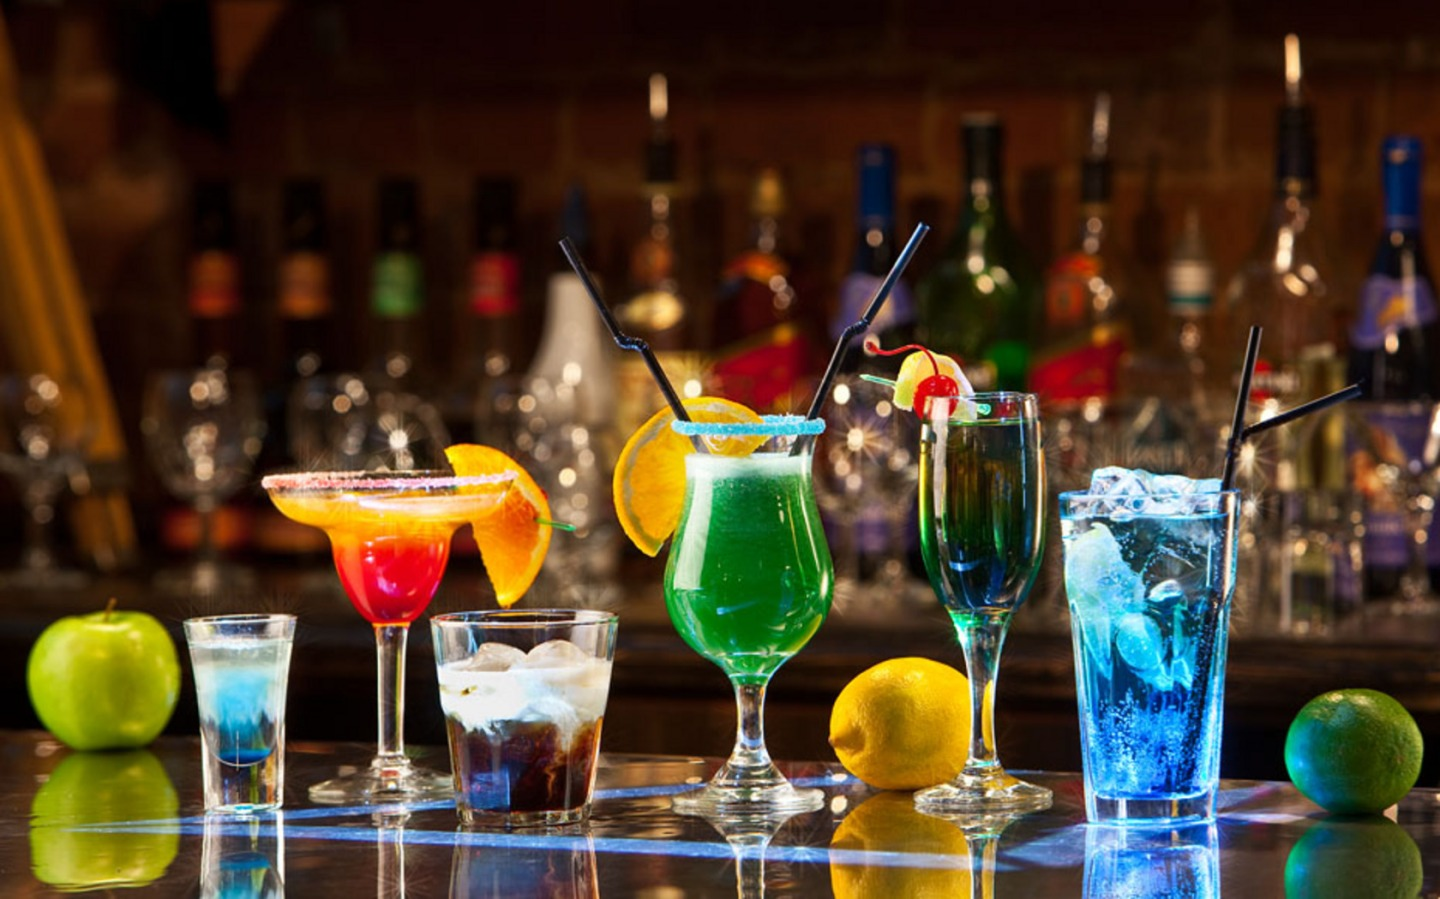 bar-galaxy-free-cocktails-the_461835